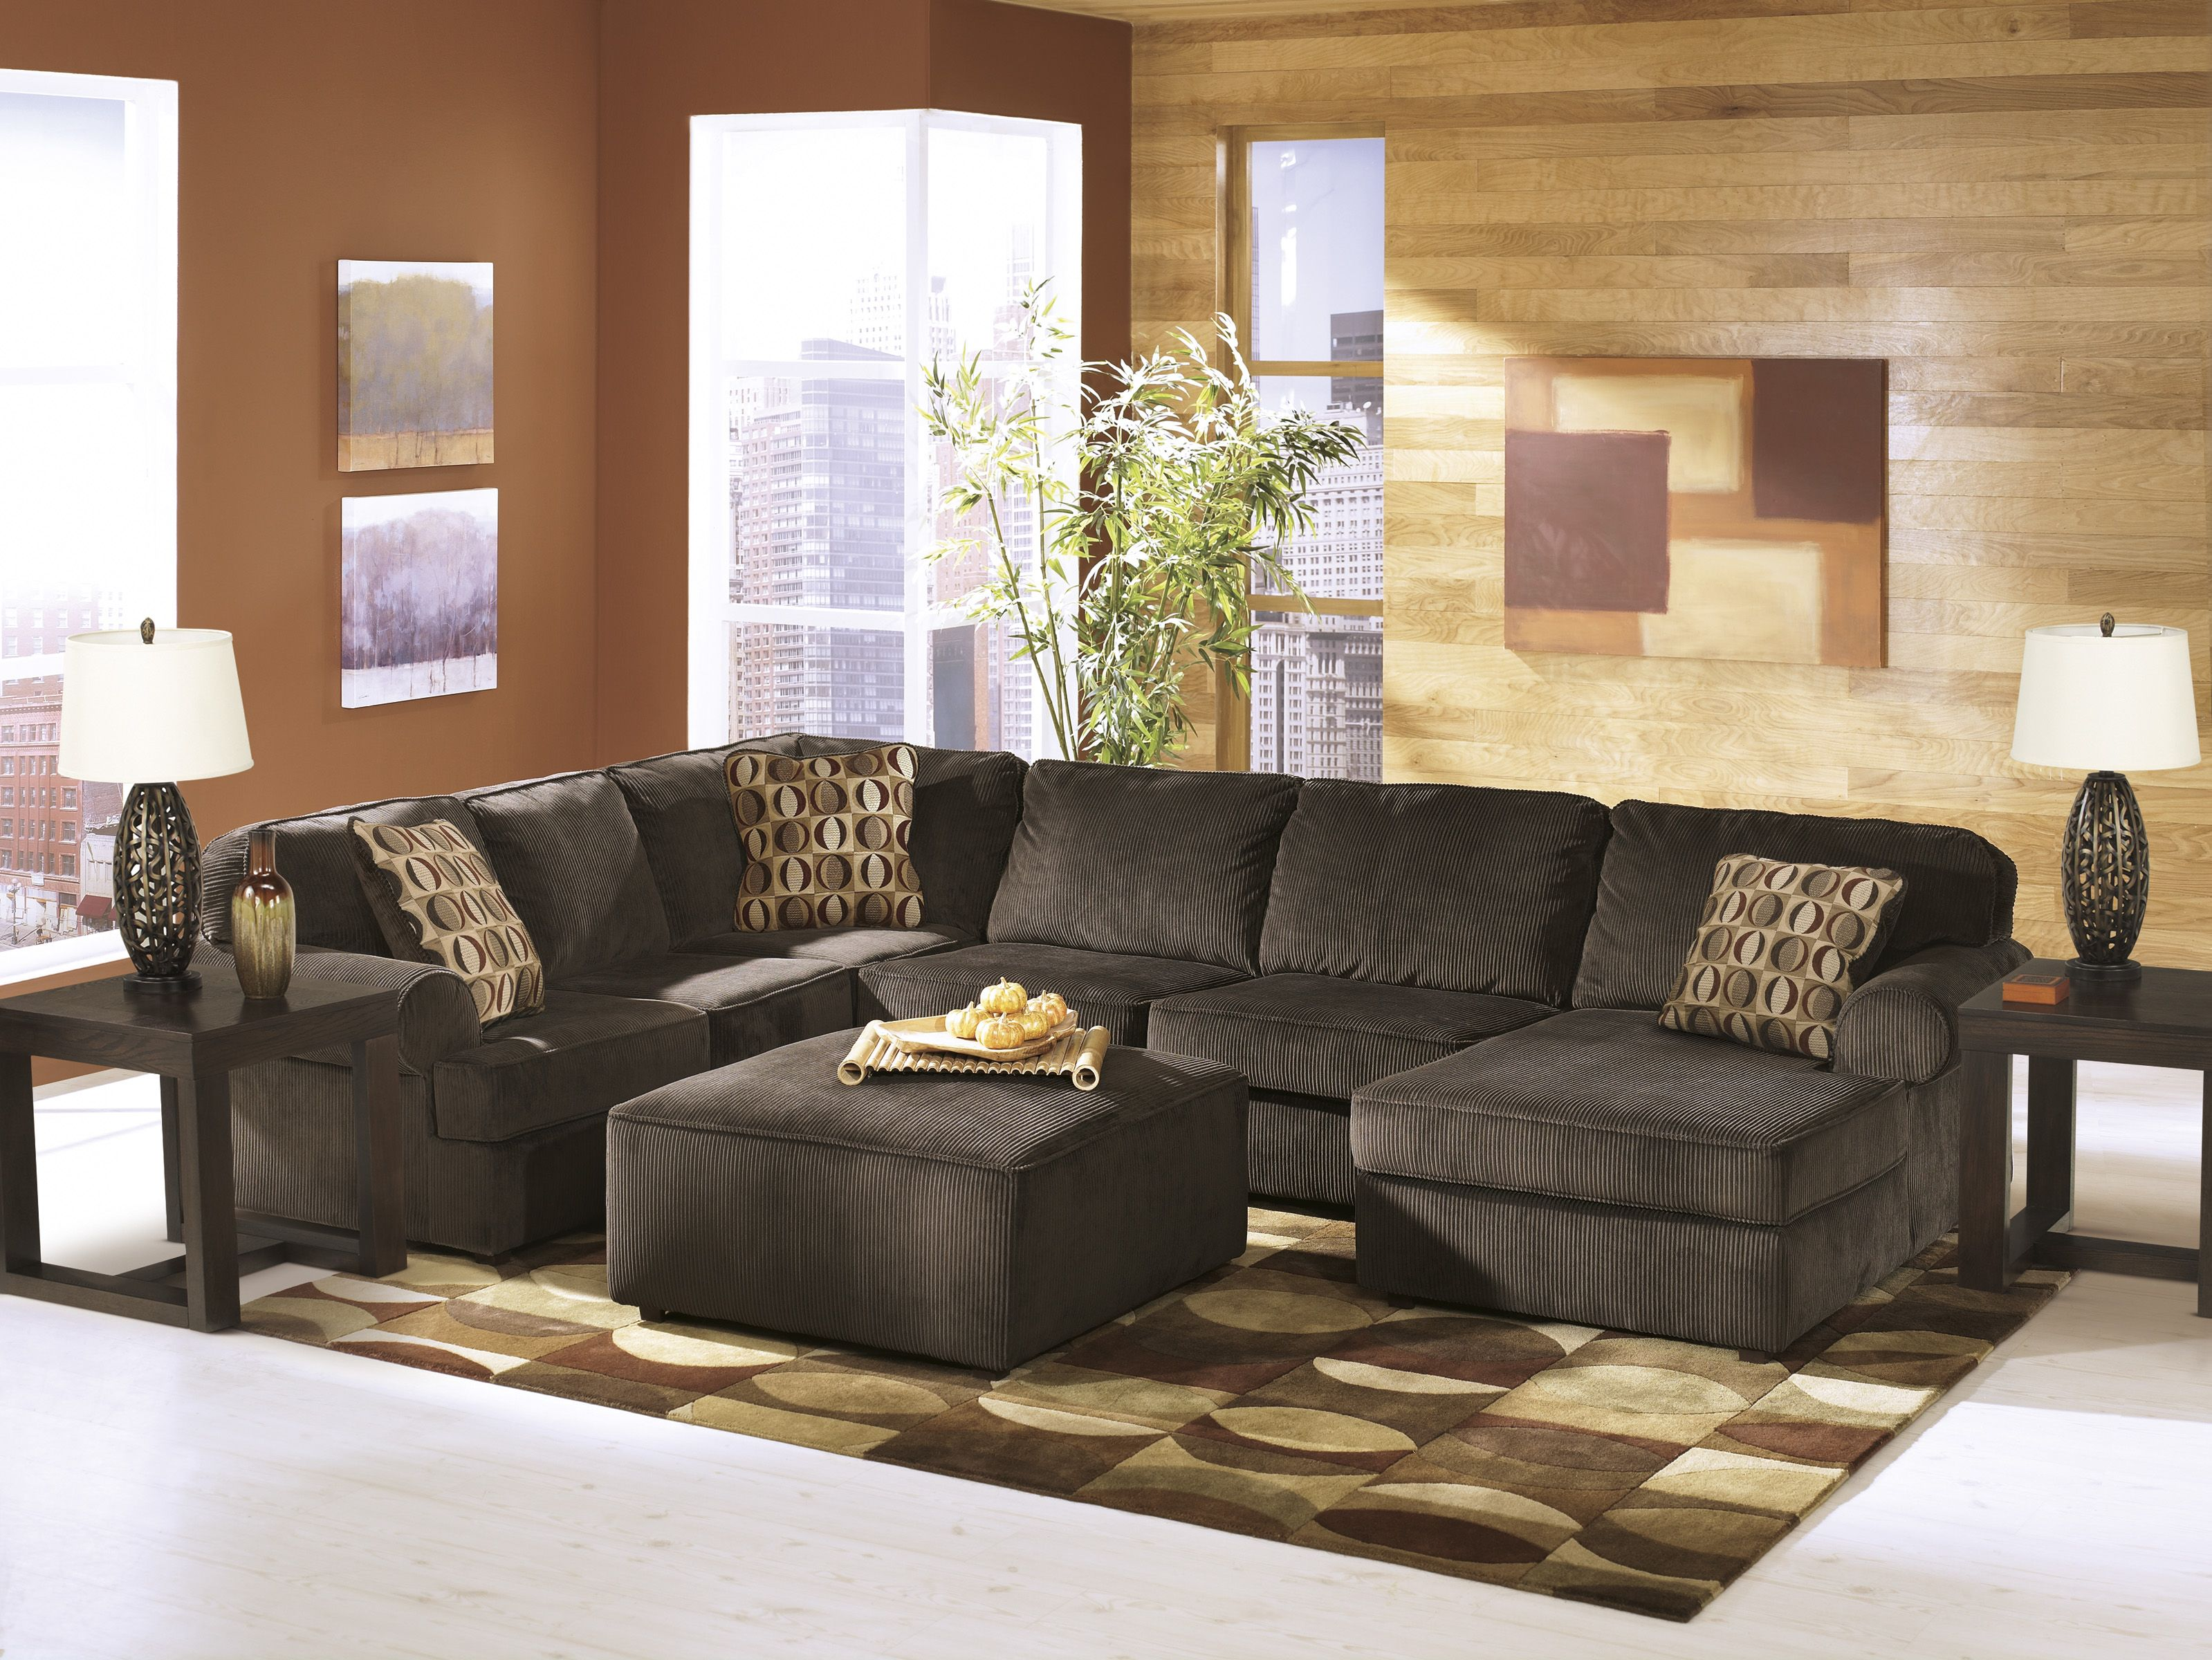 The Chaise Lounge And Sofa Can Be Ordered On Either Side Of The Sectional Ashley Furniture Sectional Living Room Sets Ashley Furniture Living Room